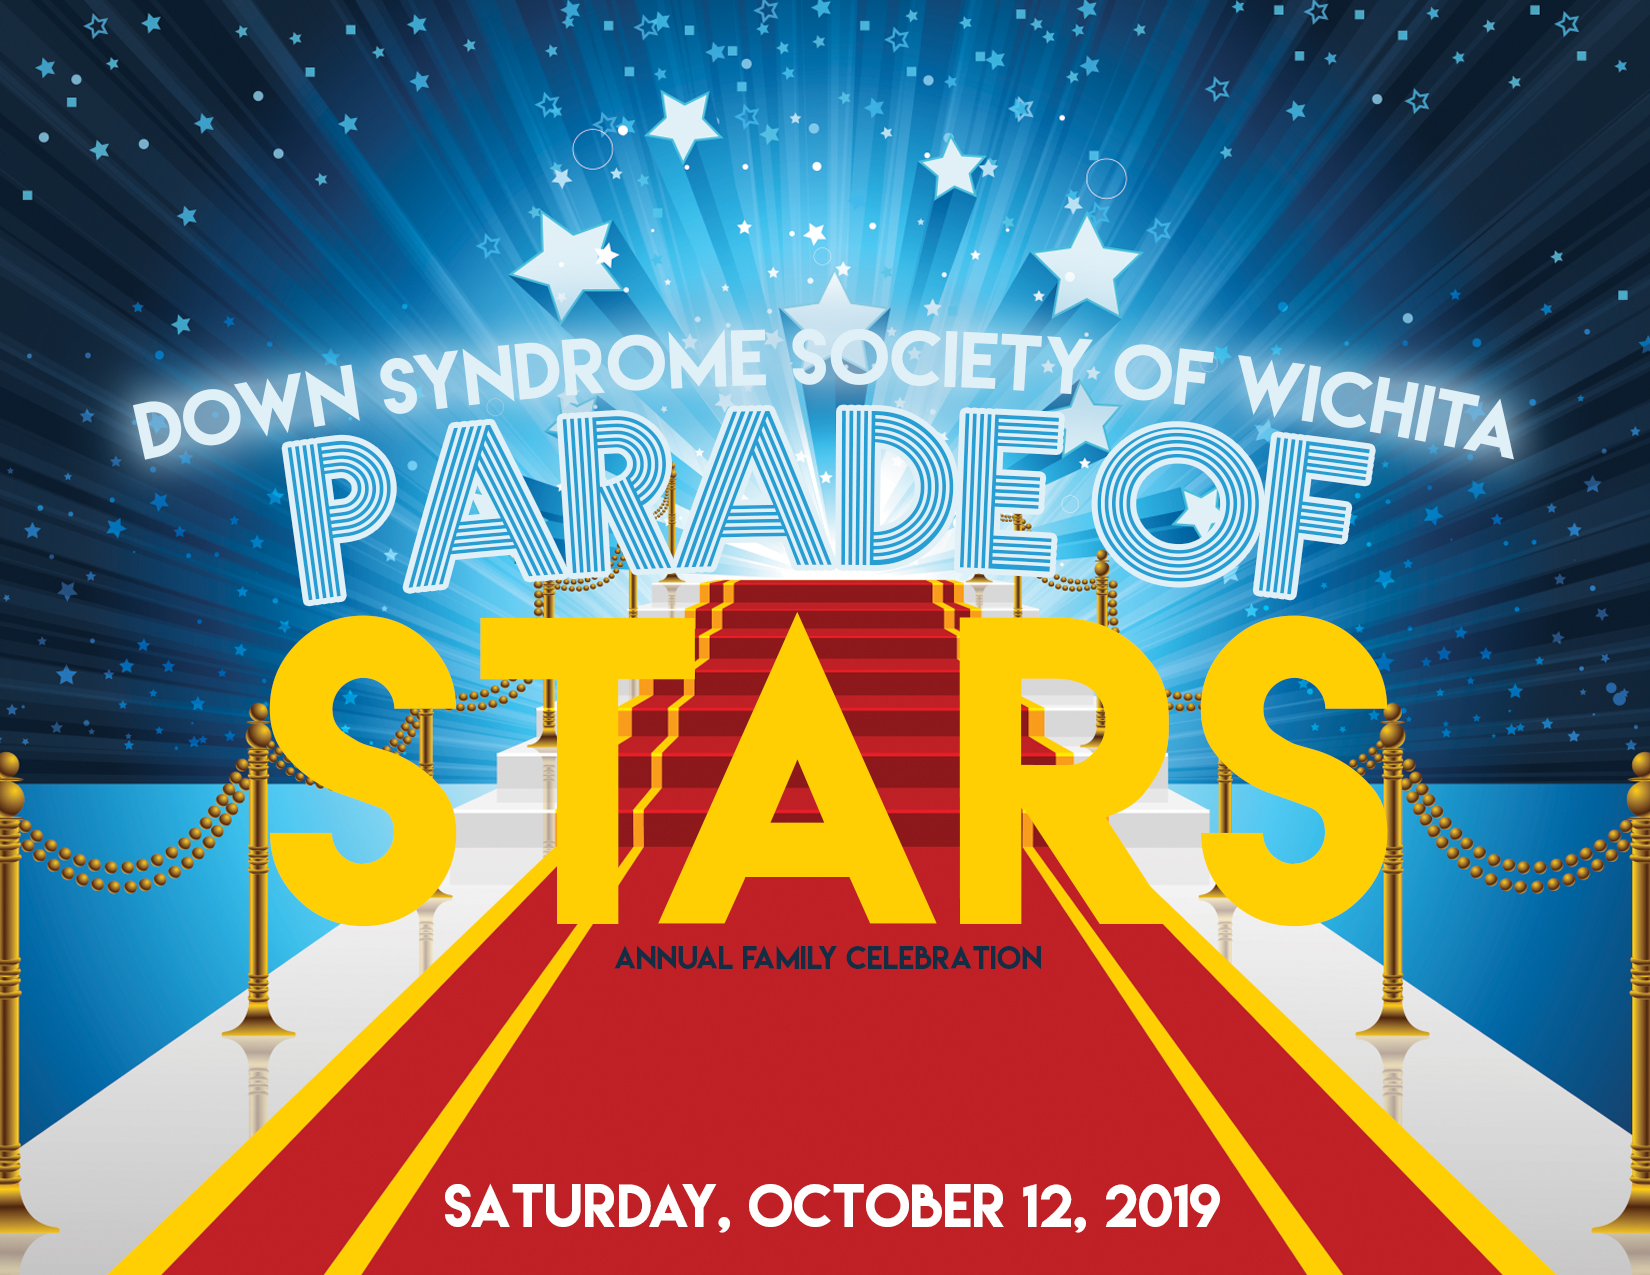 DSSW Annual Walk - Parade of Stars